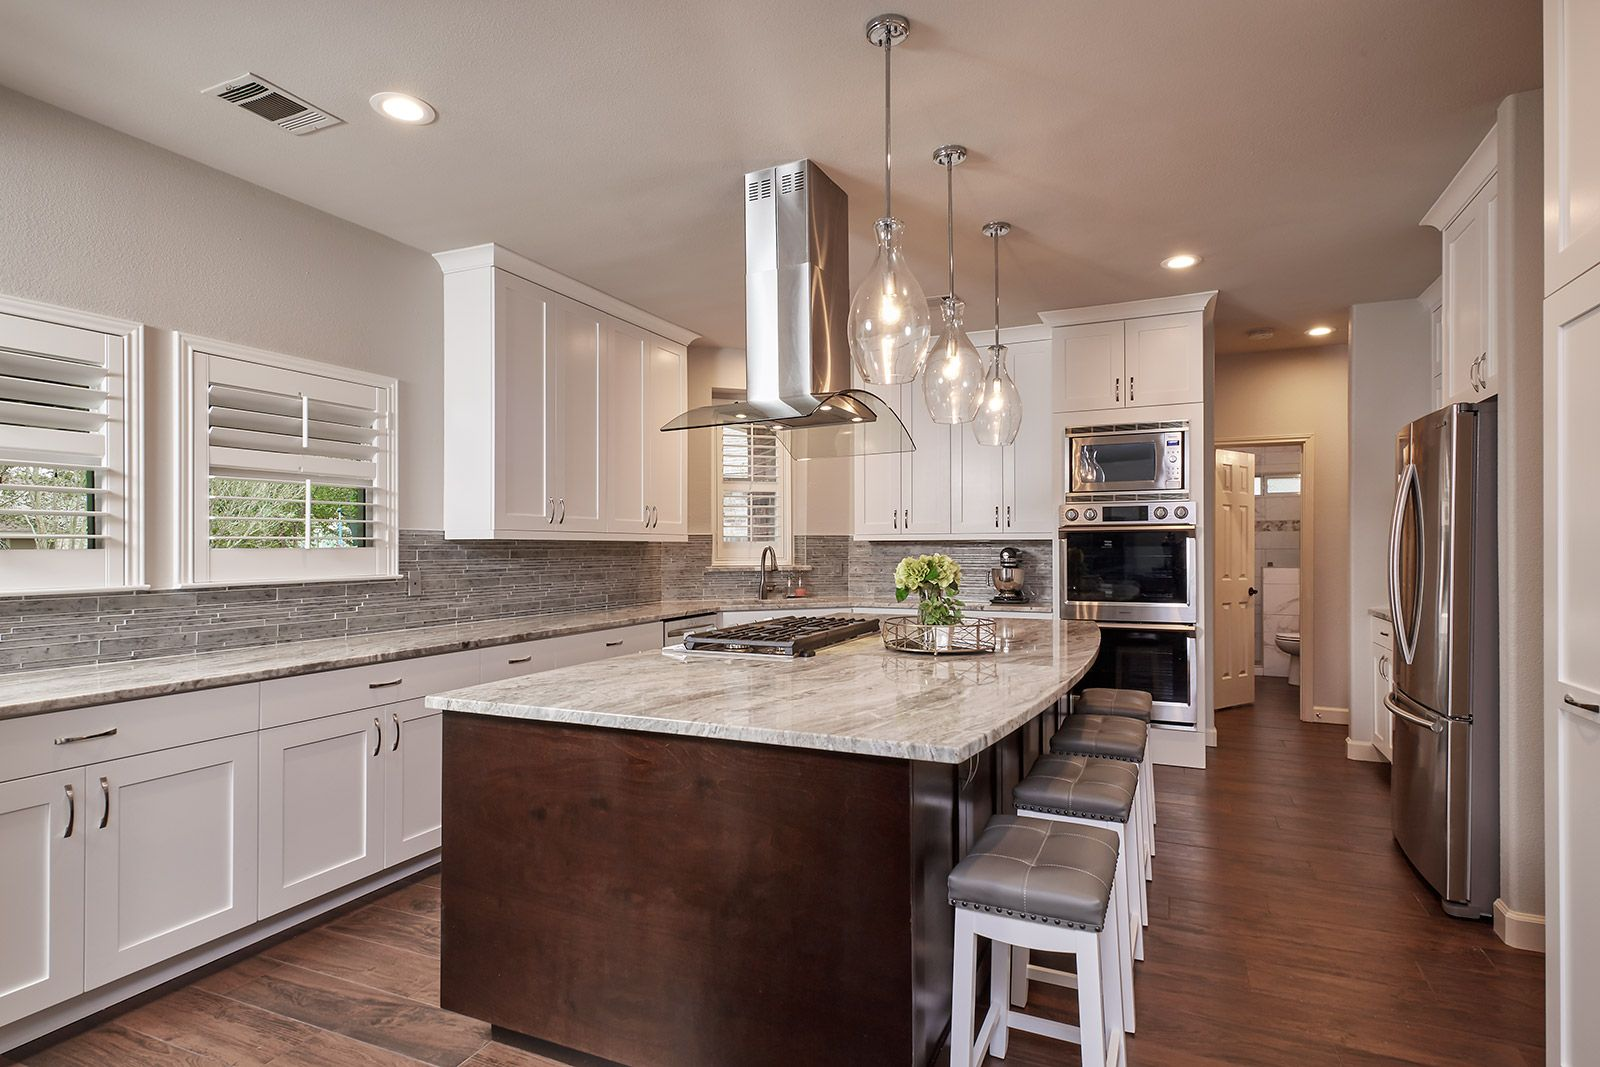 Kitchen Cabinets Are An Important Part Of Our Kitchen Furniture Pick A Wide Selection Of Amazing K Kitchen Remodel Kitchen Remodel Design Kitchen Remodel Cost